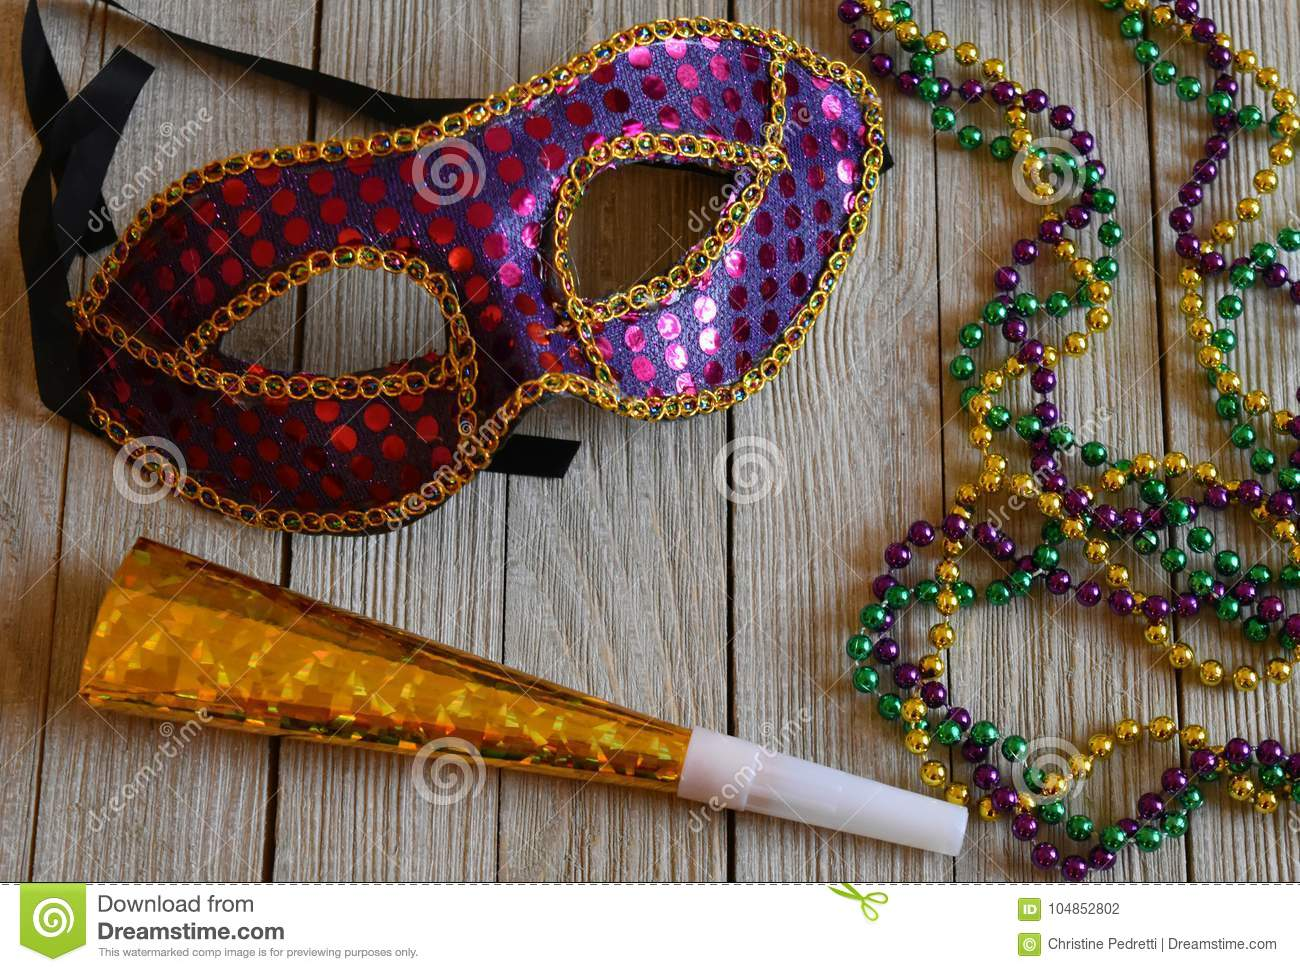 Colorful Mardi Gras mask with beads on wood background